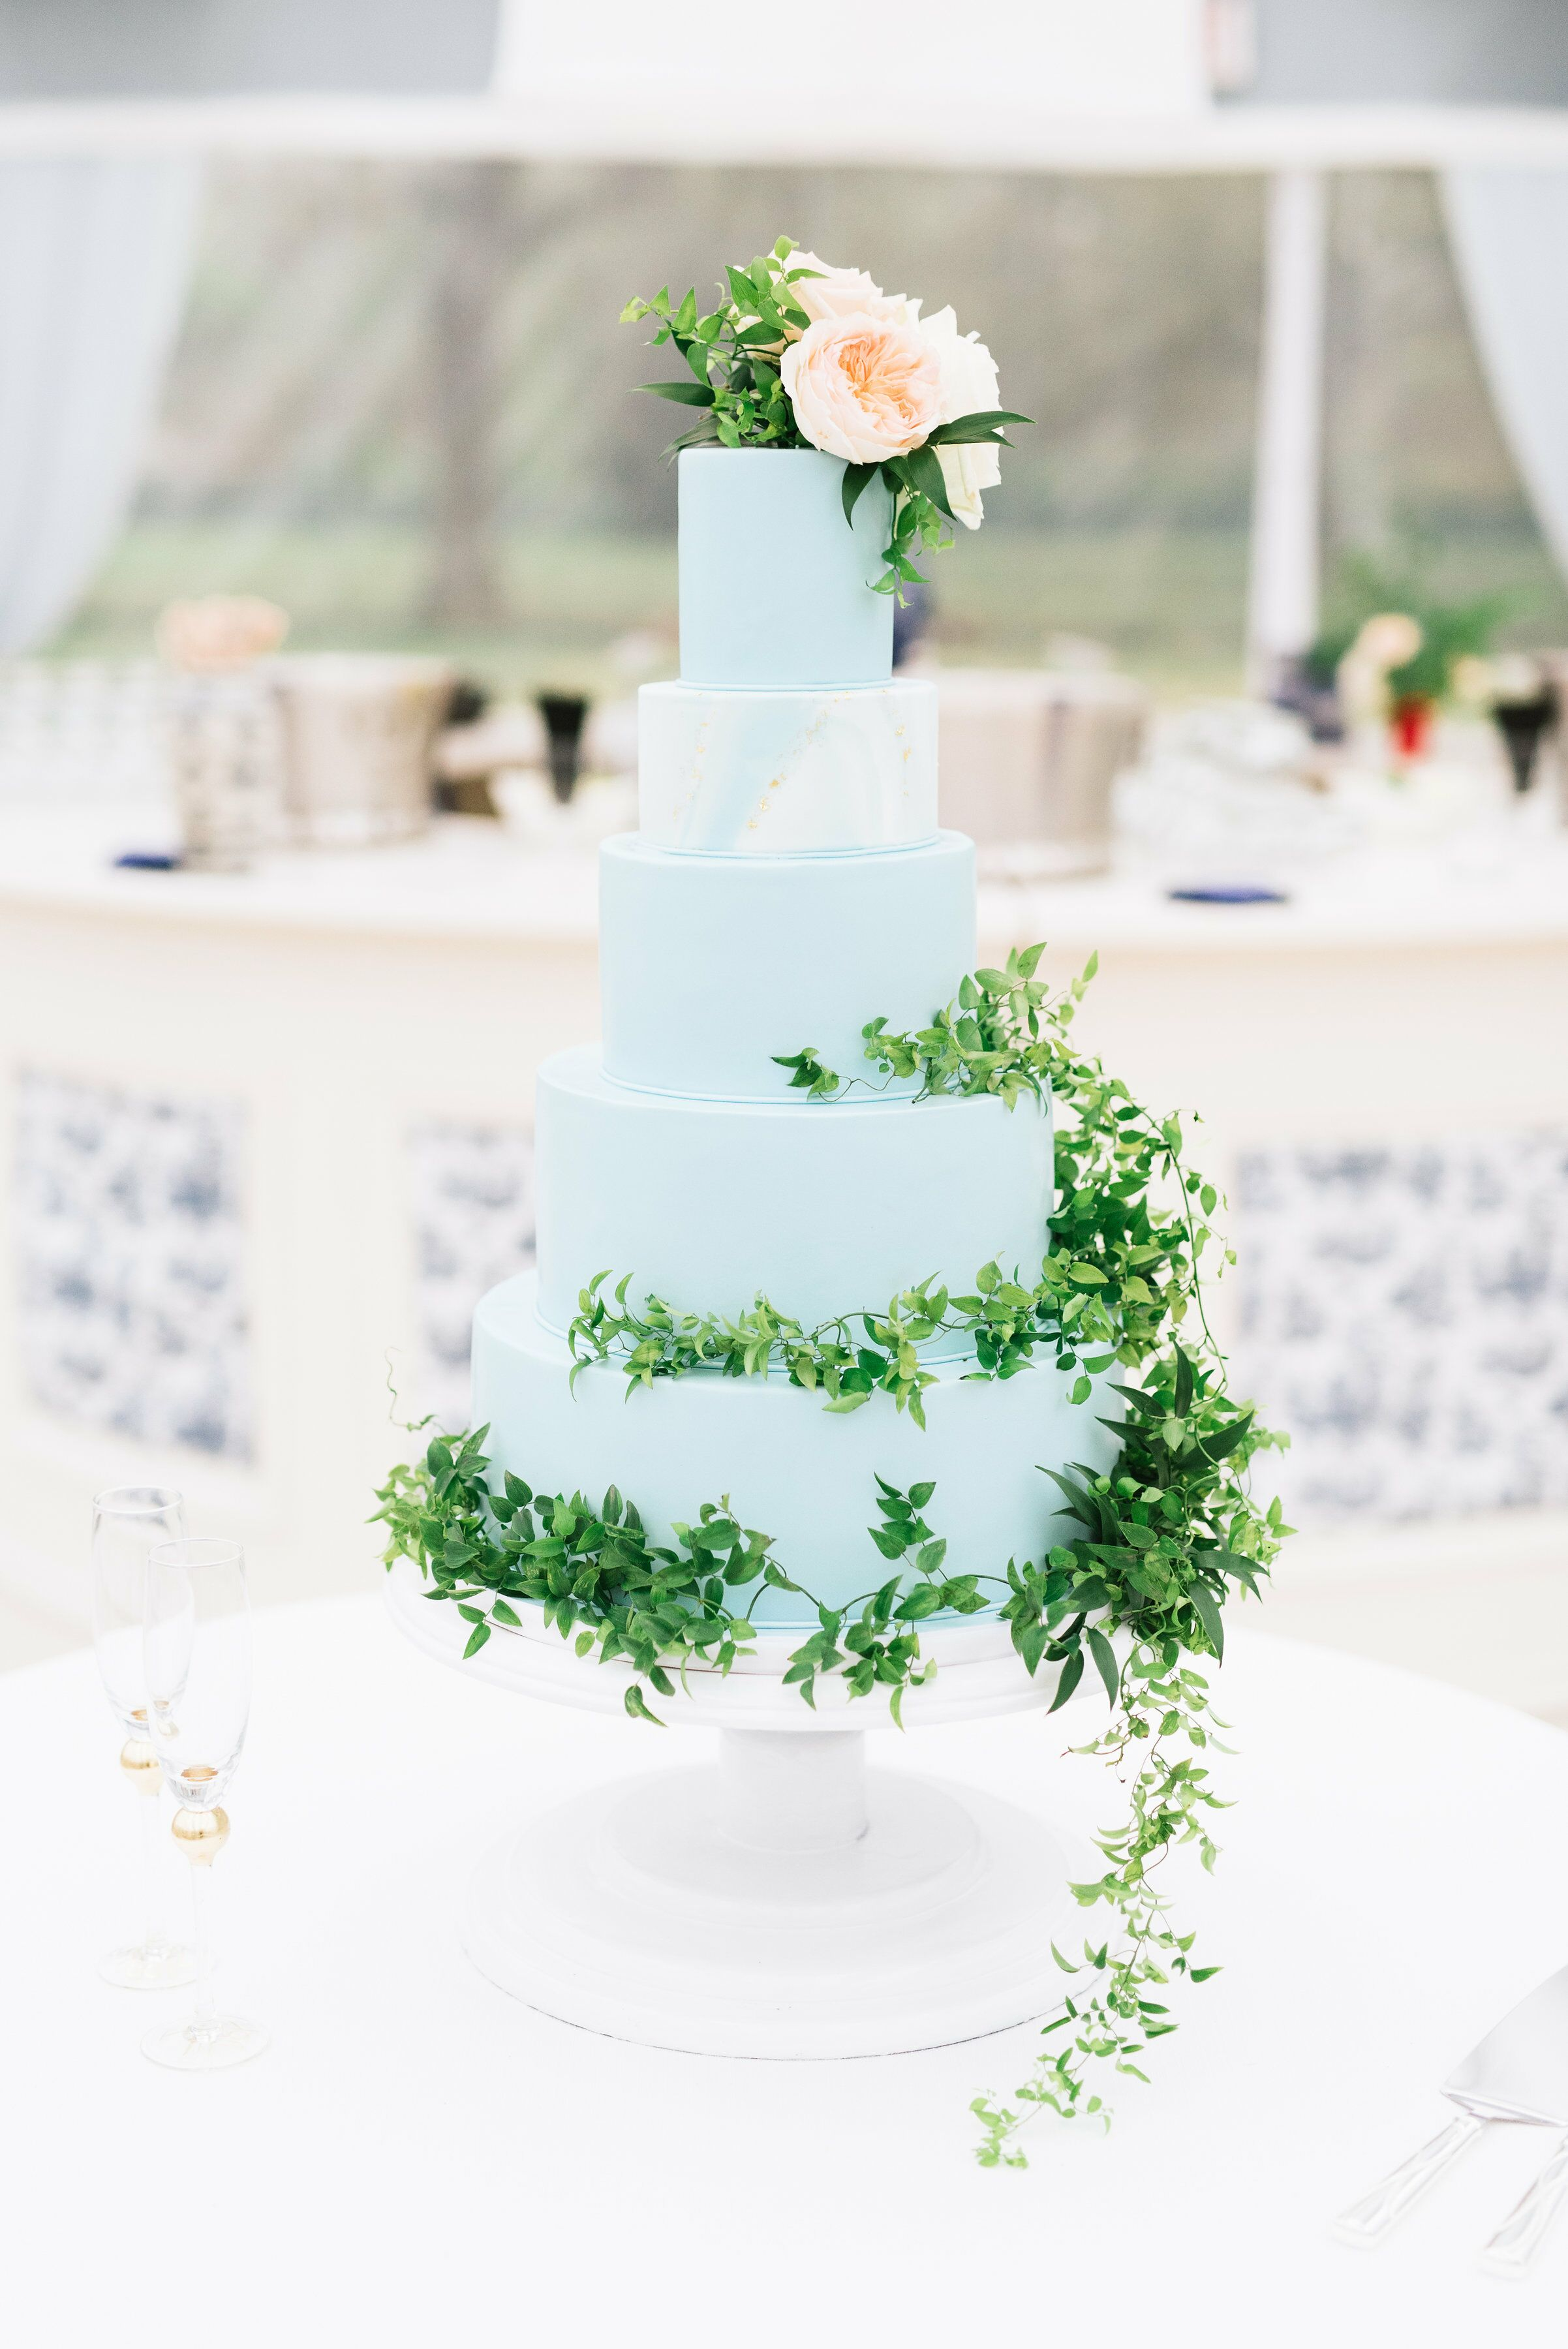 The Wow Factor Cakes Wedding Cakes Charlotte Nc